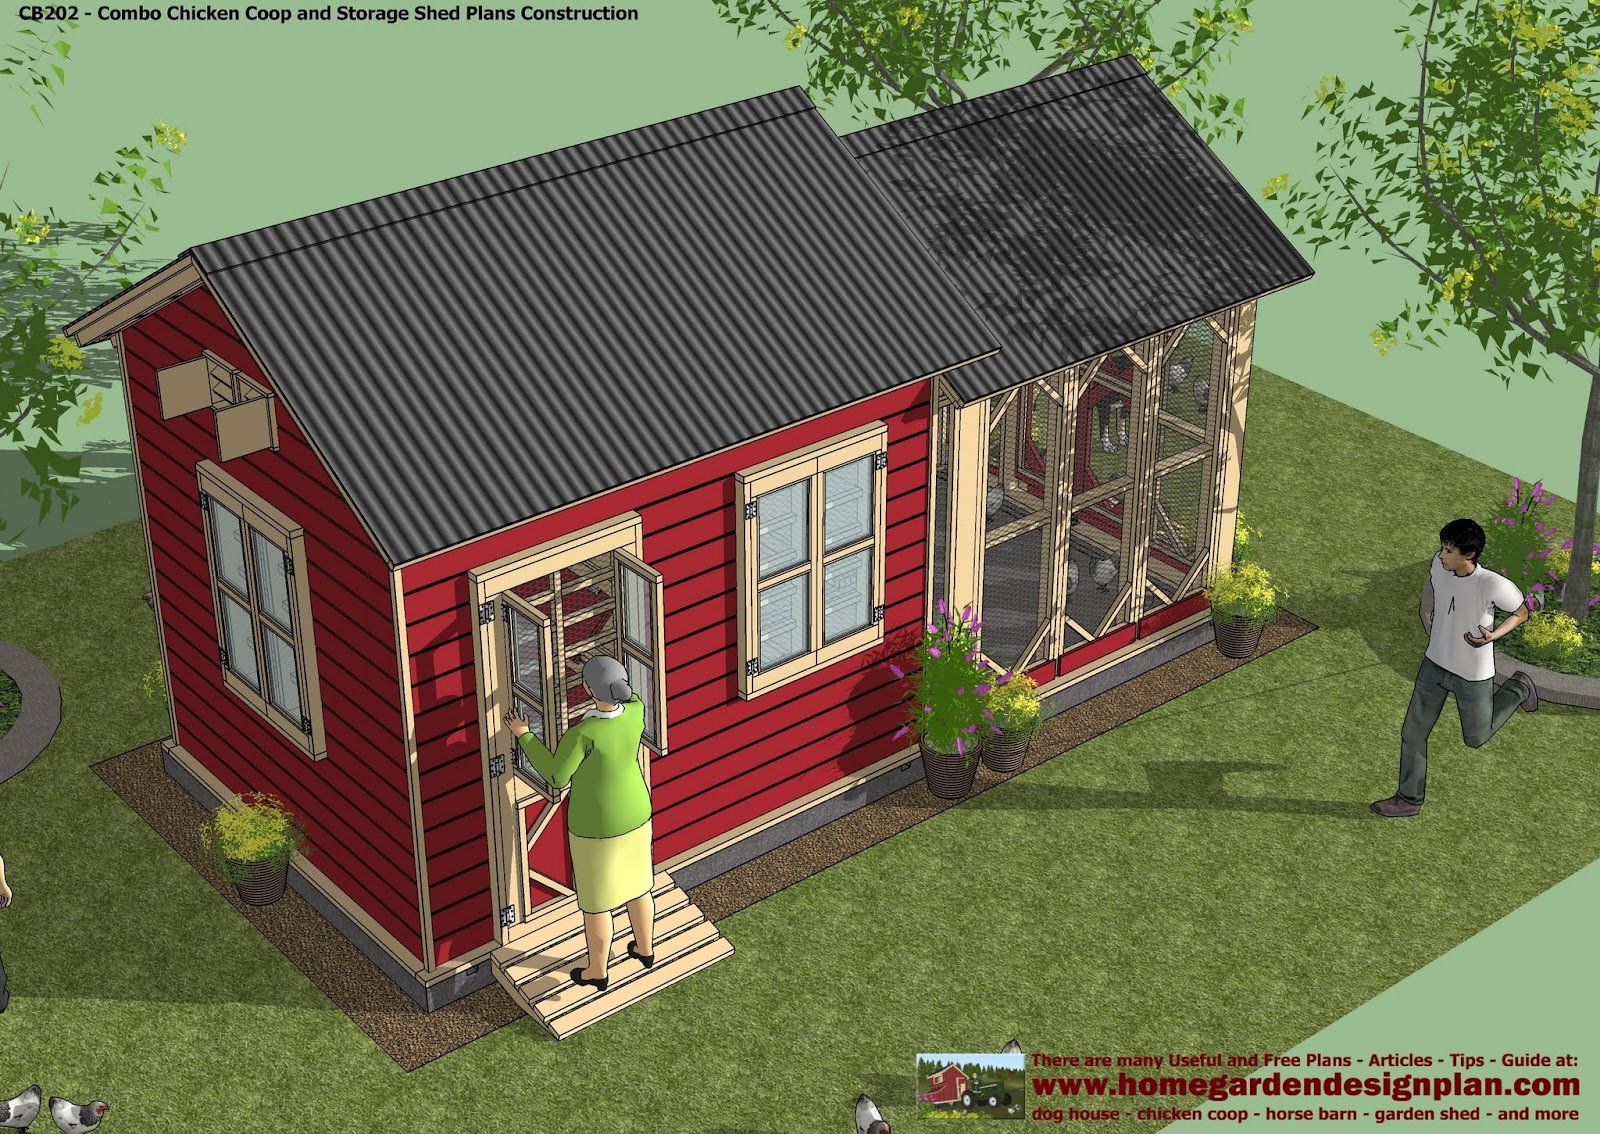 Home garden plans free plans for Chicken coop size for 6 chickens